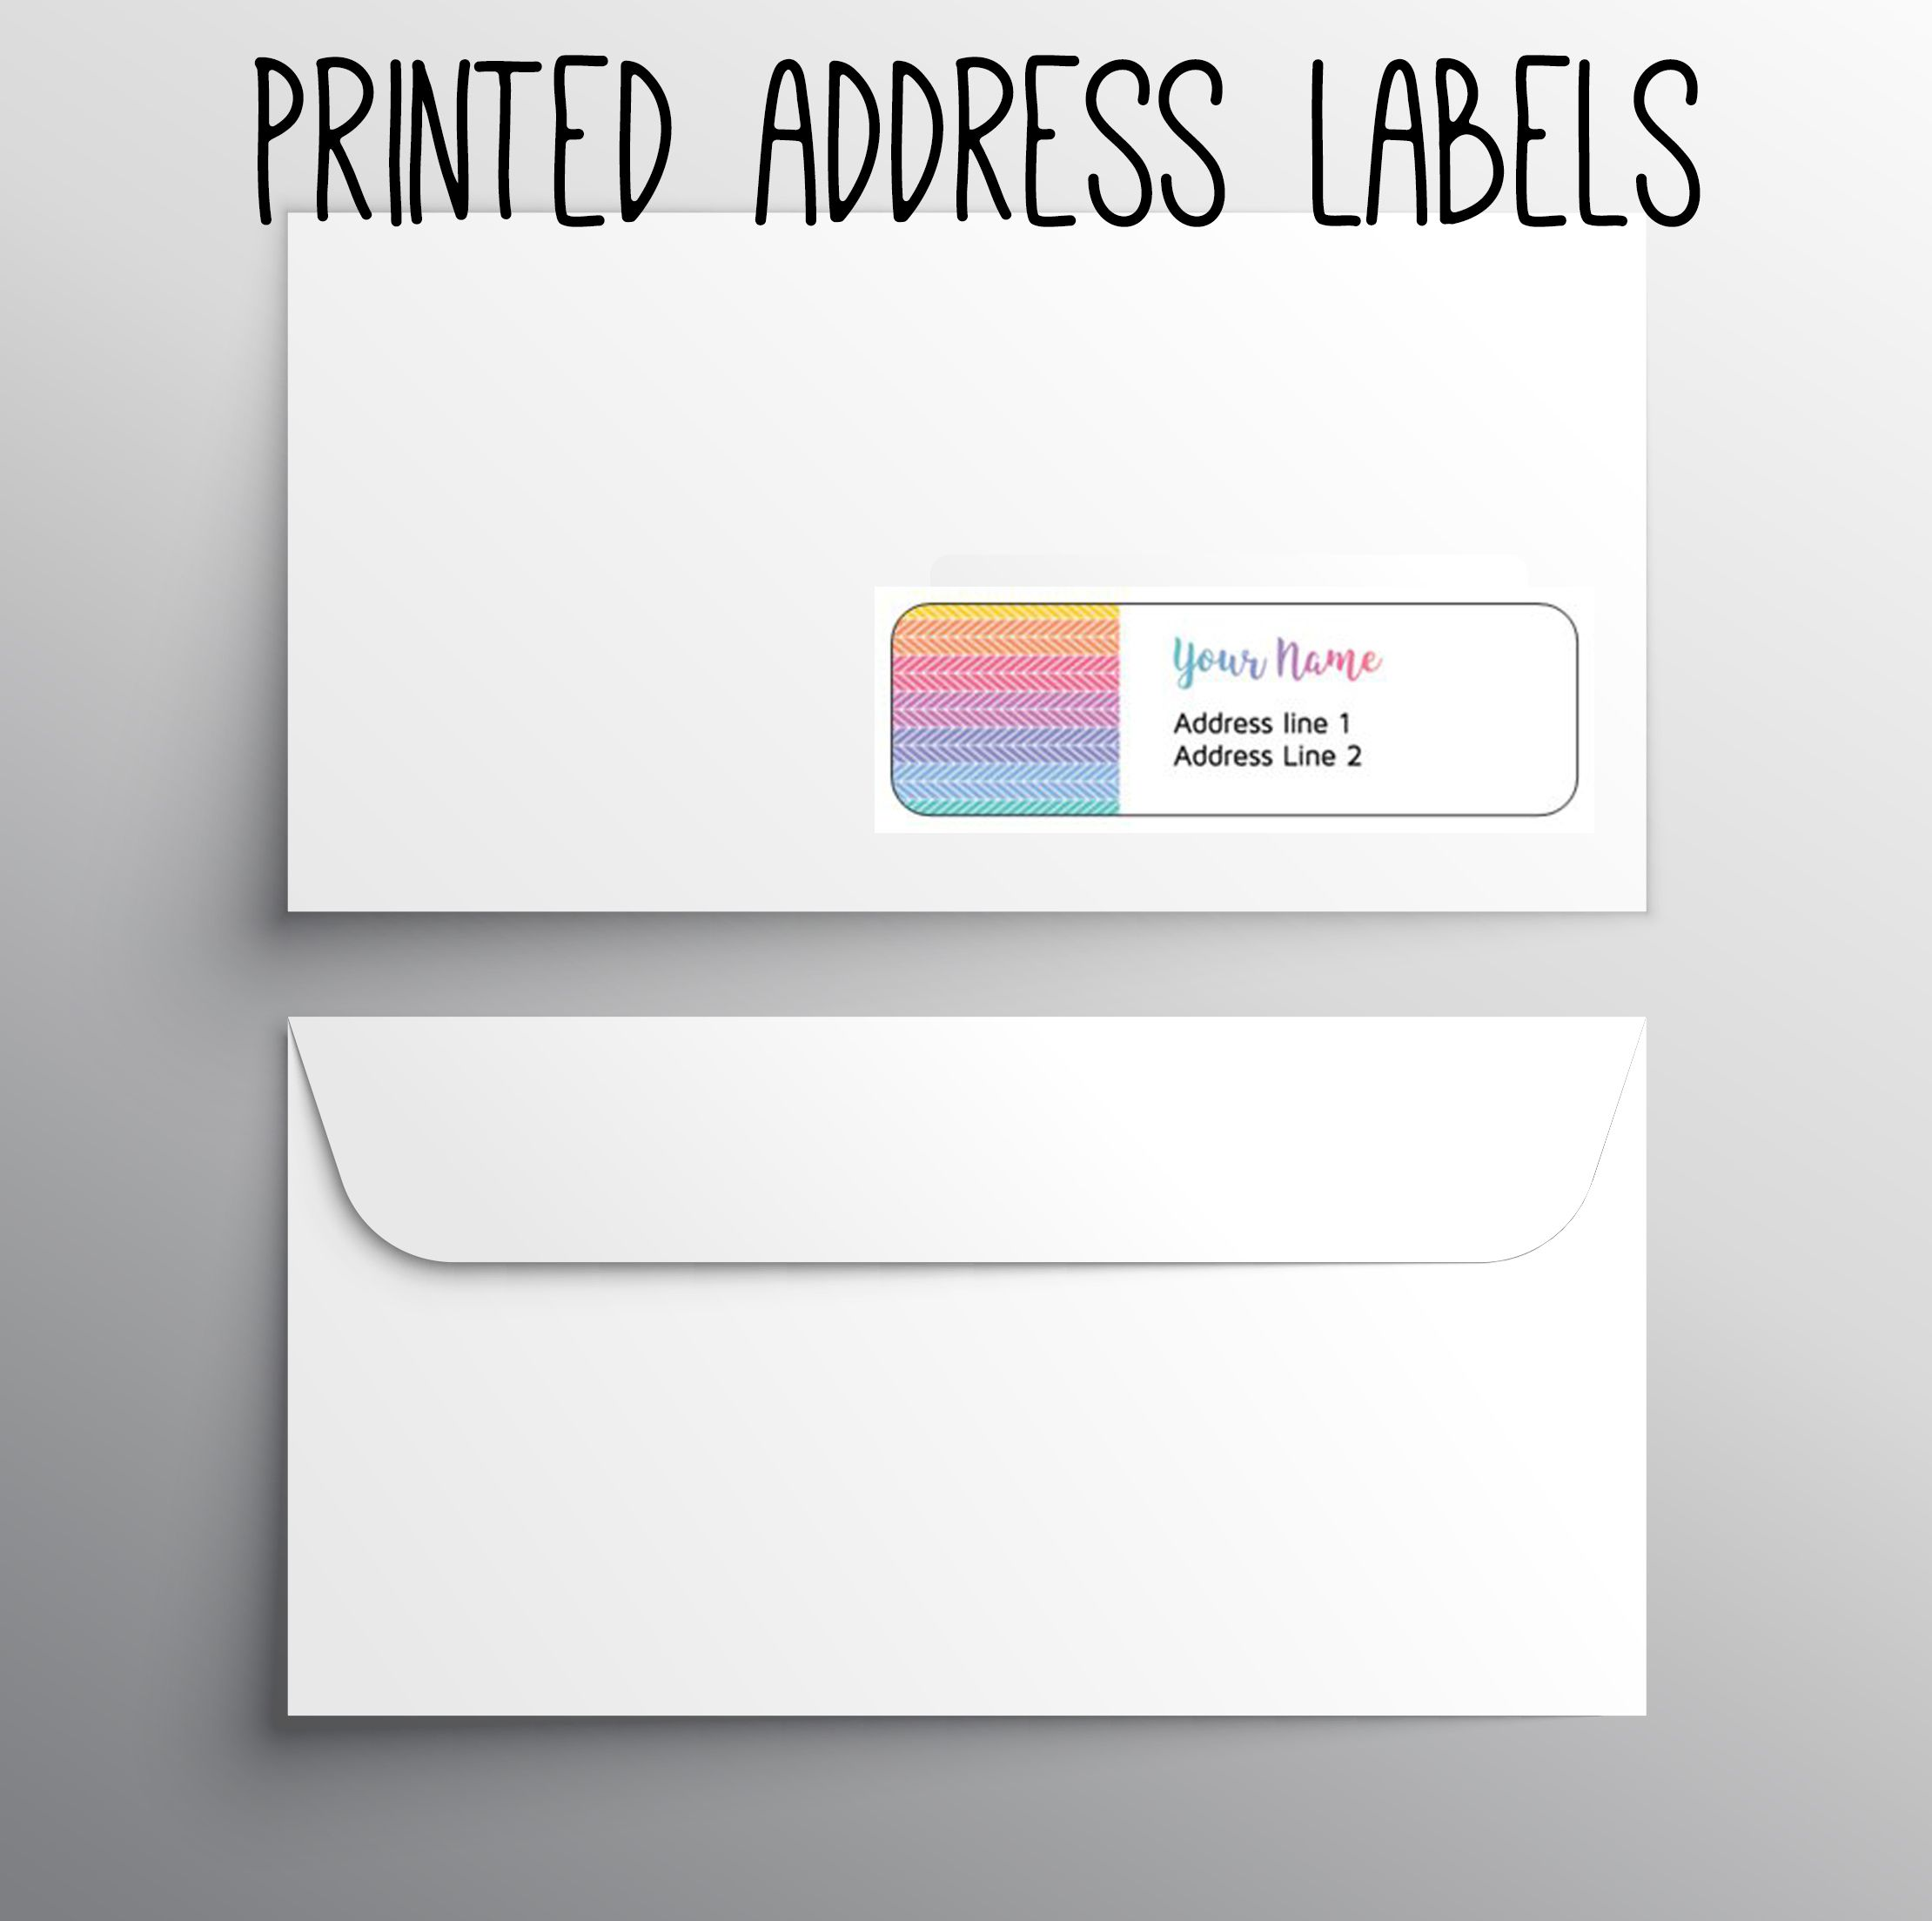 140 return address labels printed address labels fashion business labels custom digital or printed herringbone rainbow